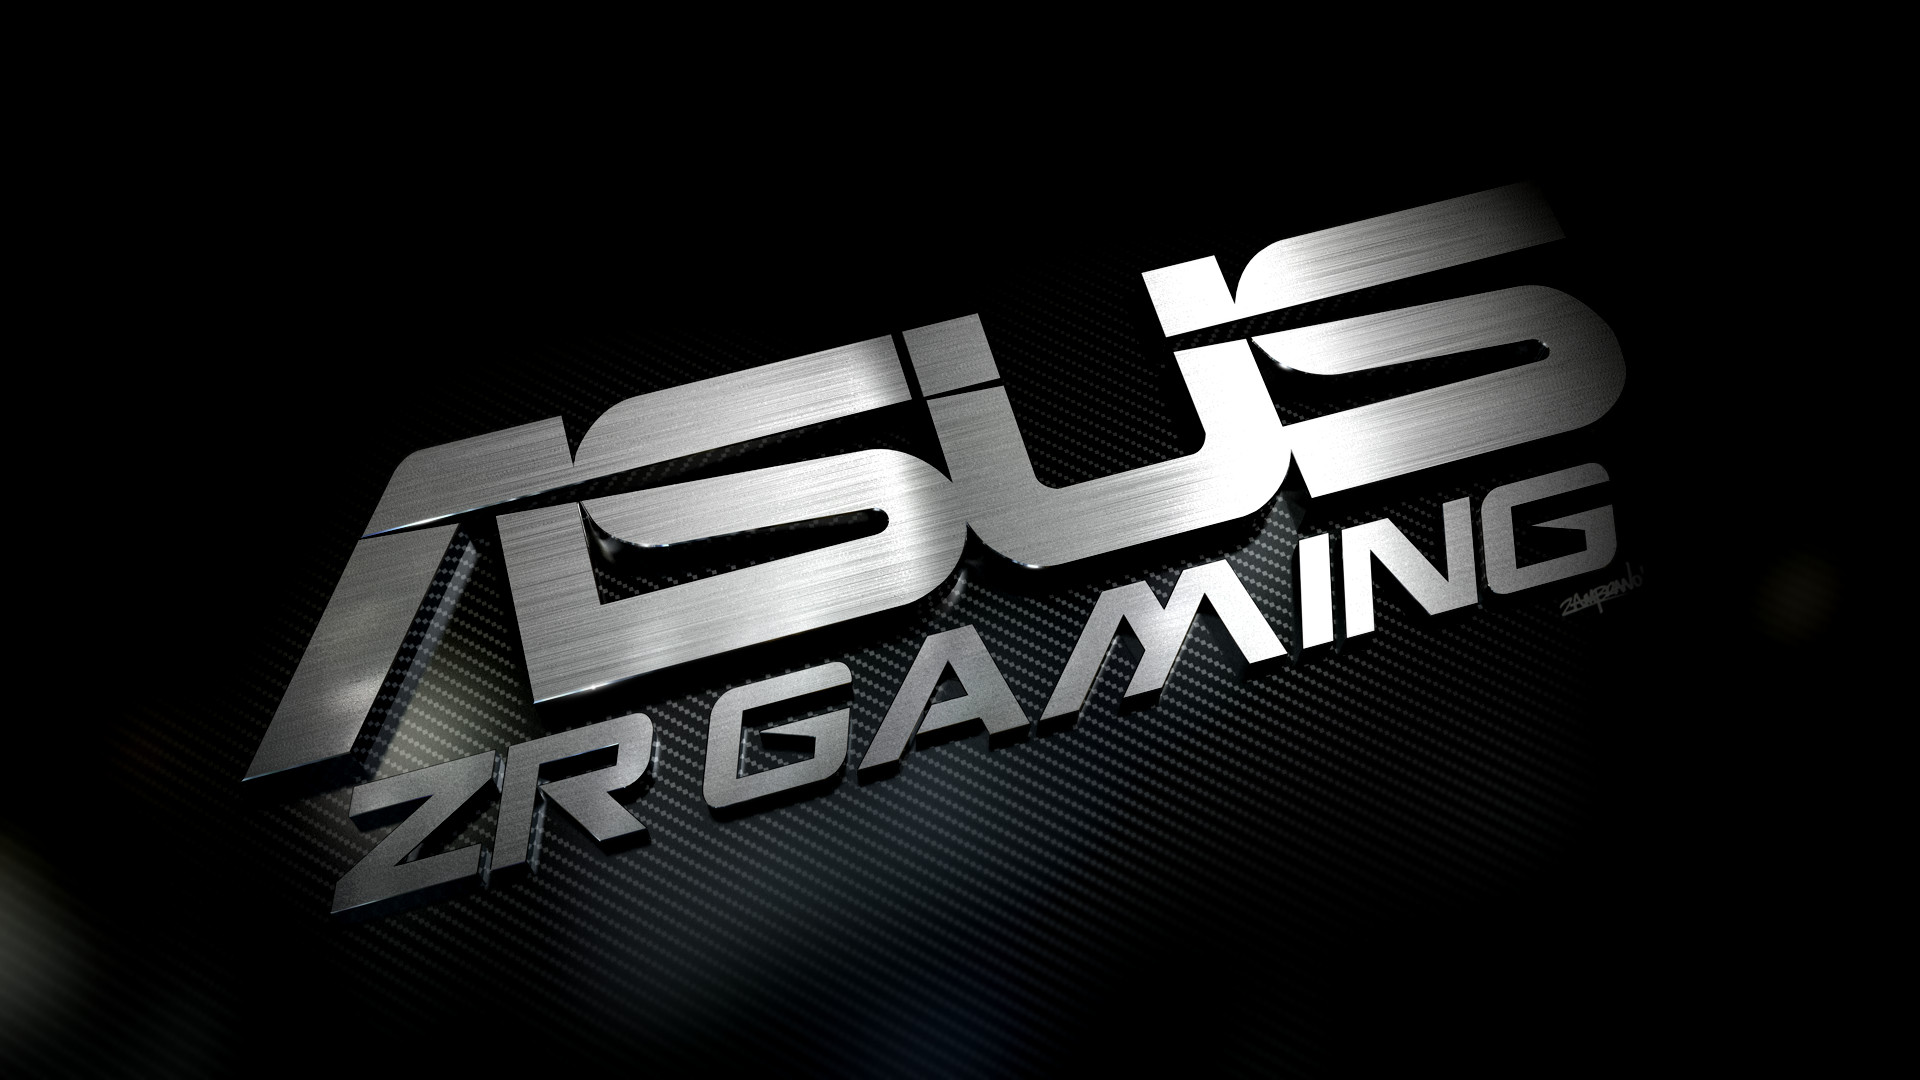 Asus Wallpapers Hd - Asus Wallpaper Hd , HD Wallpaper & Backgrounds